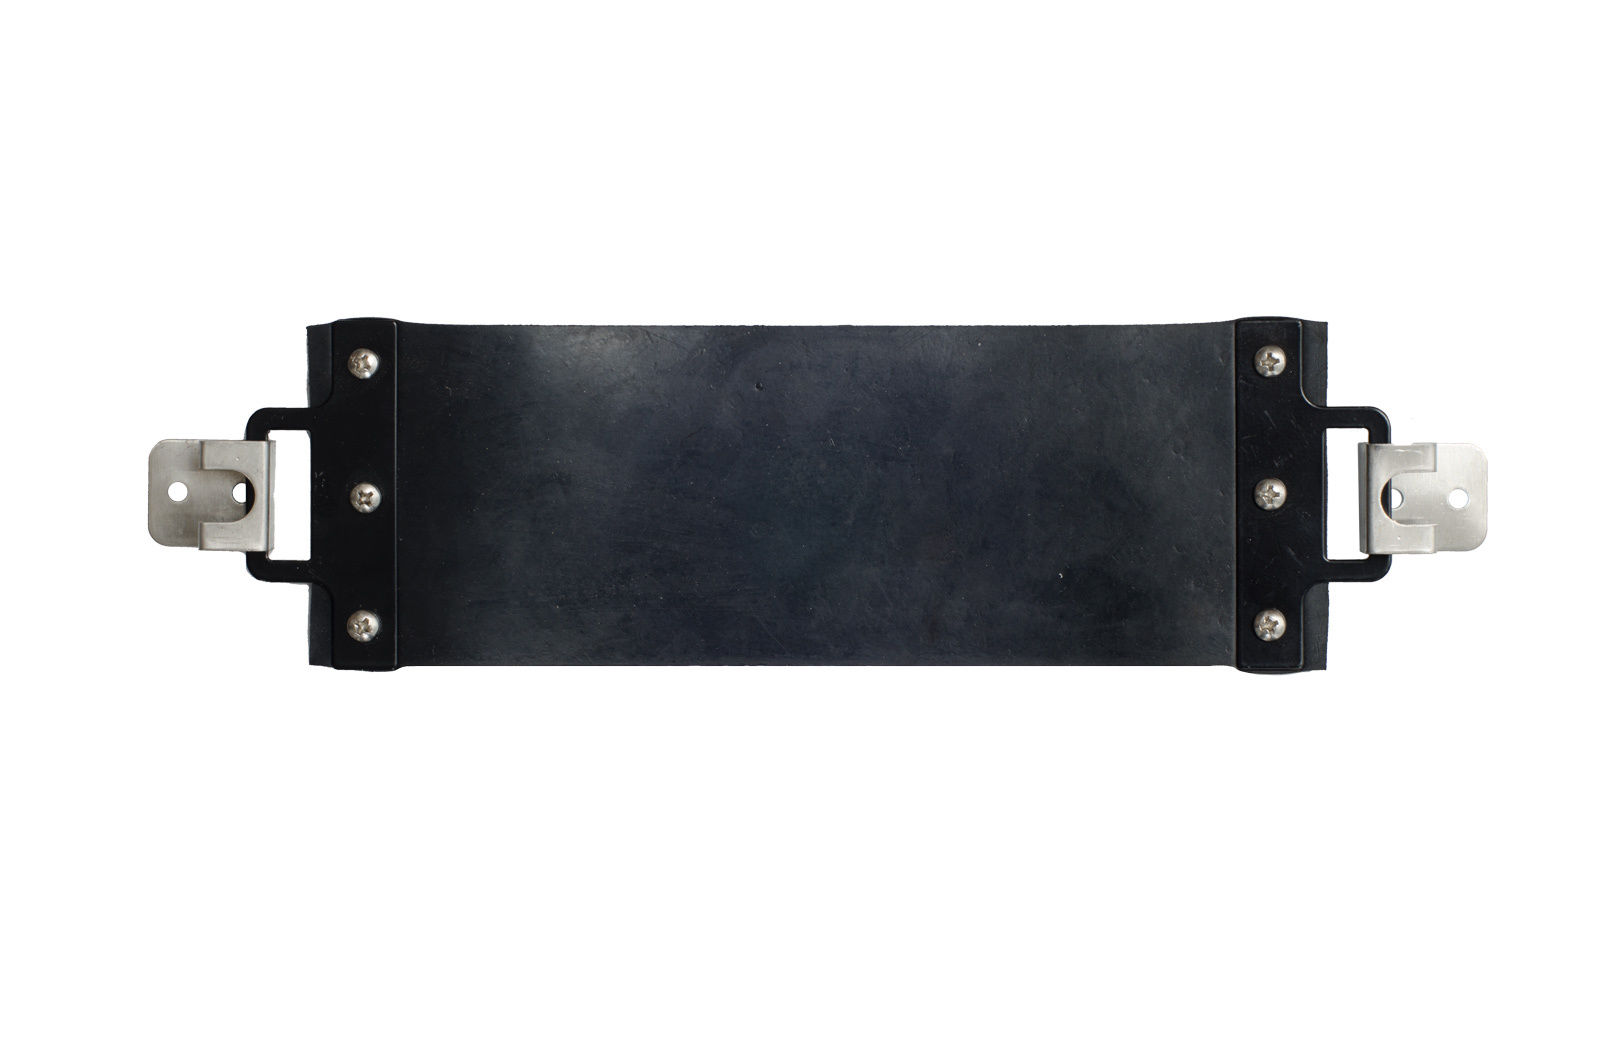 CO2 Tank Holder Strap with 2 Anchors Black Rubber Belt Great for Kegerators!